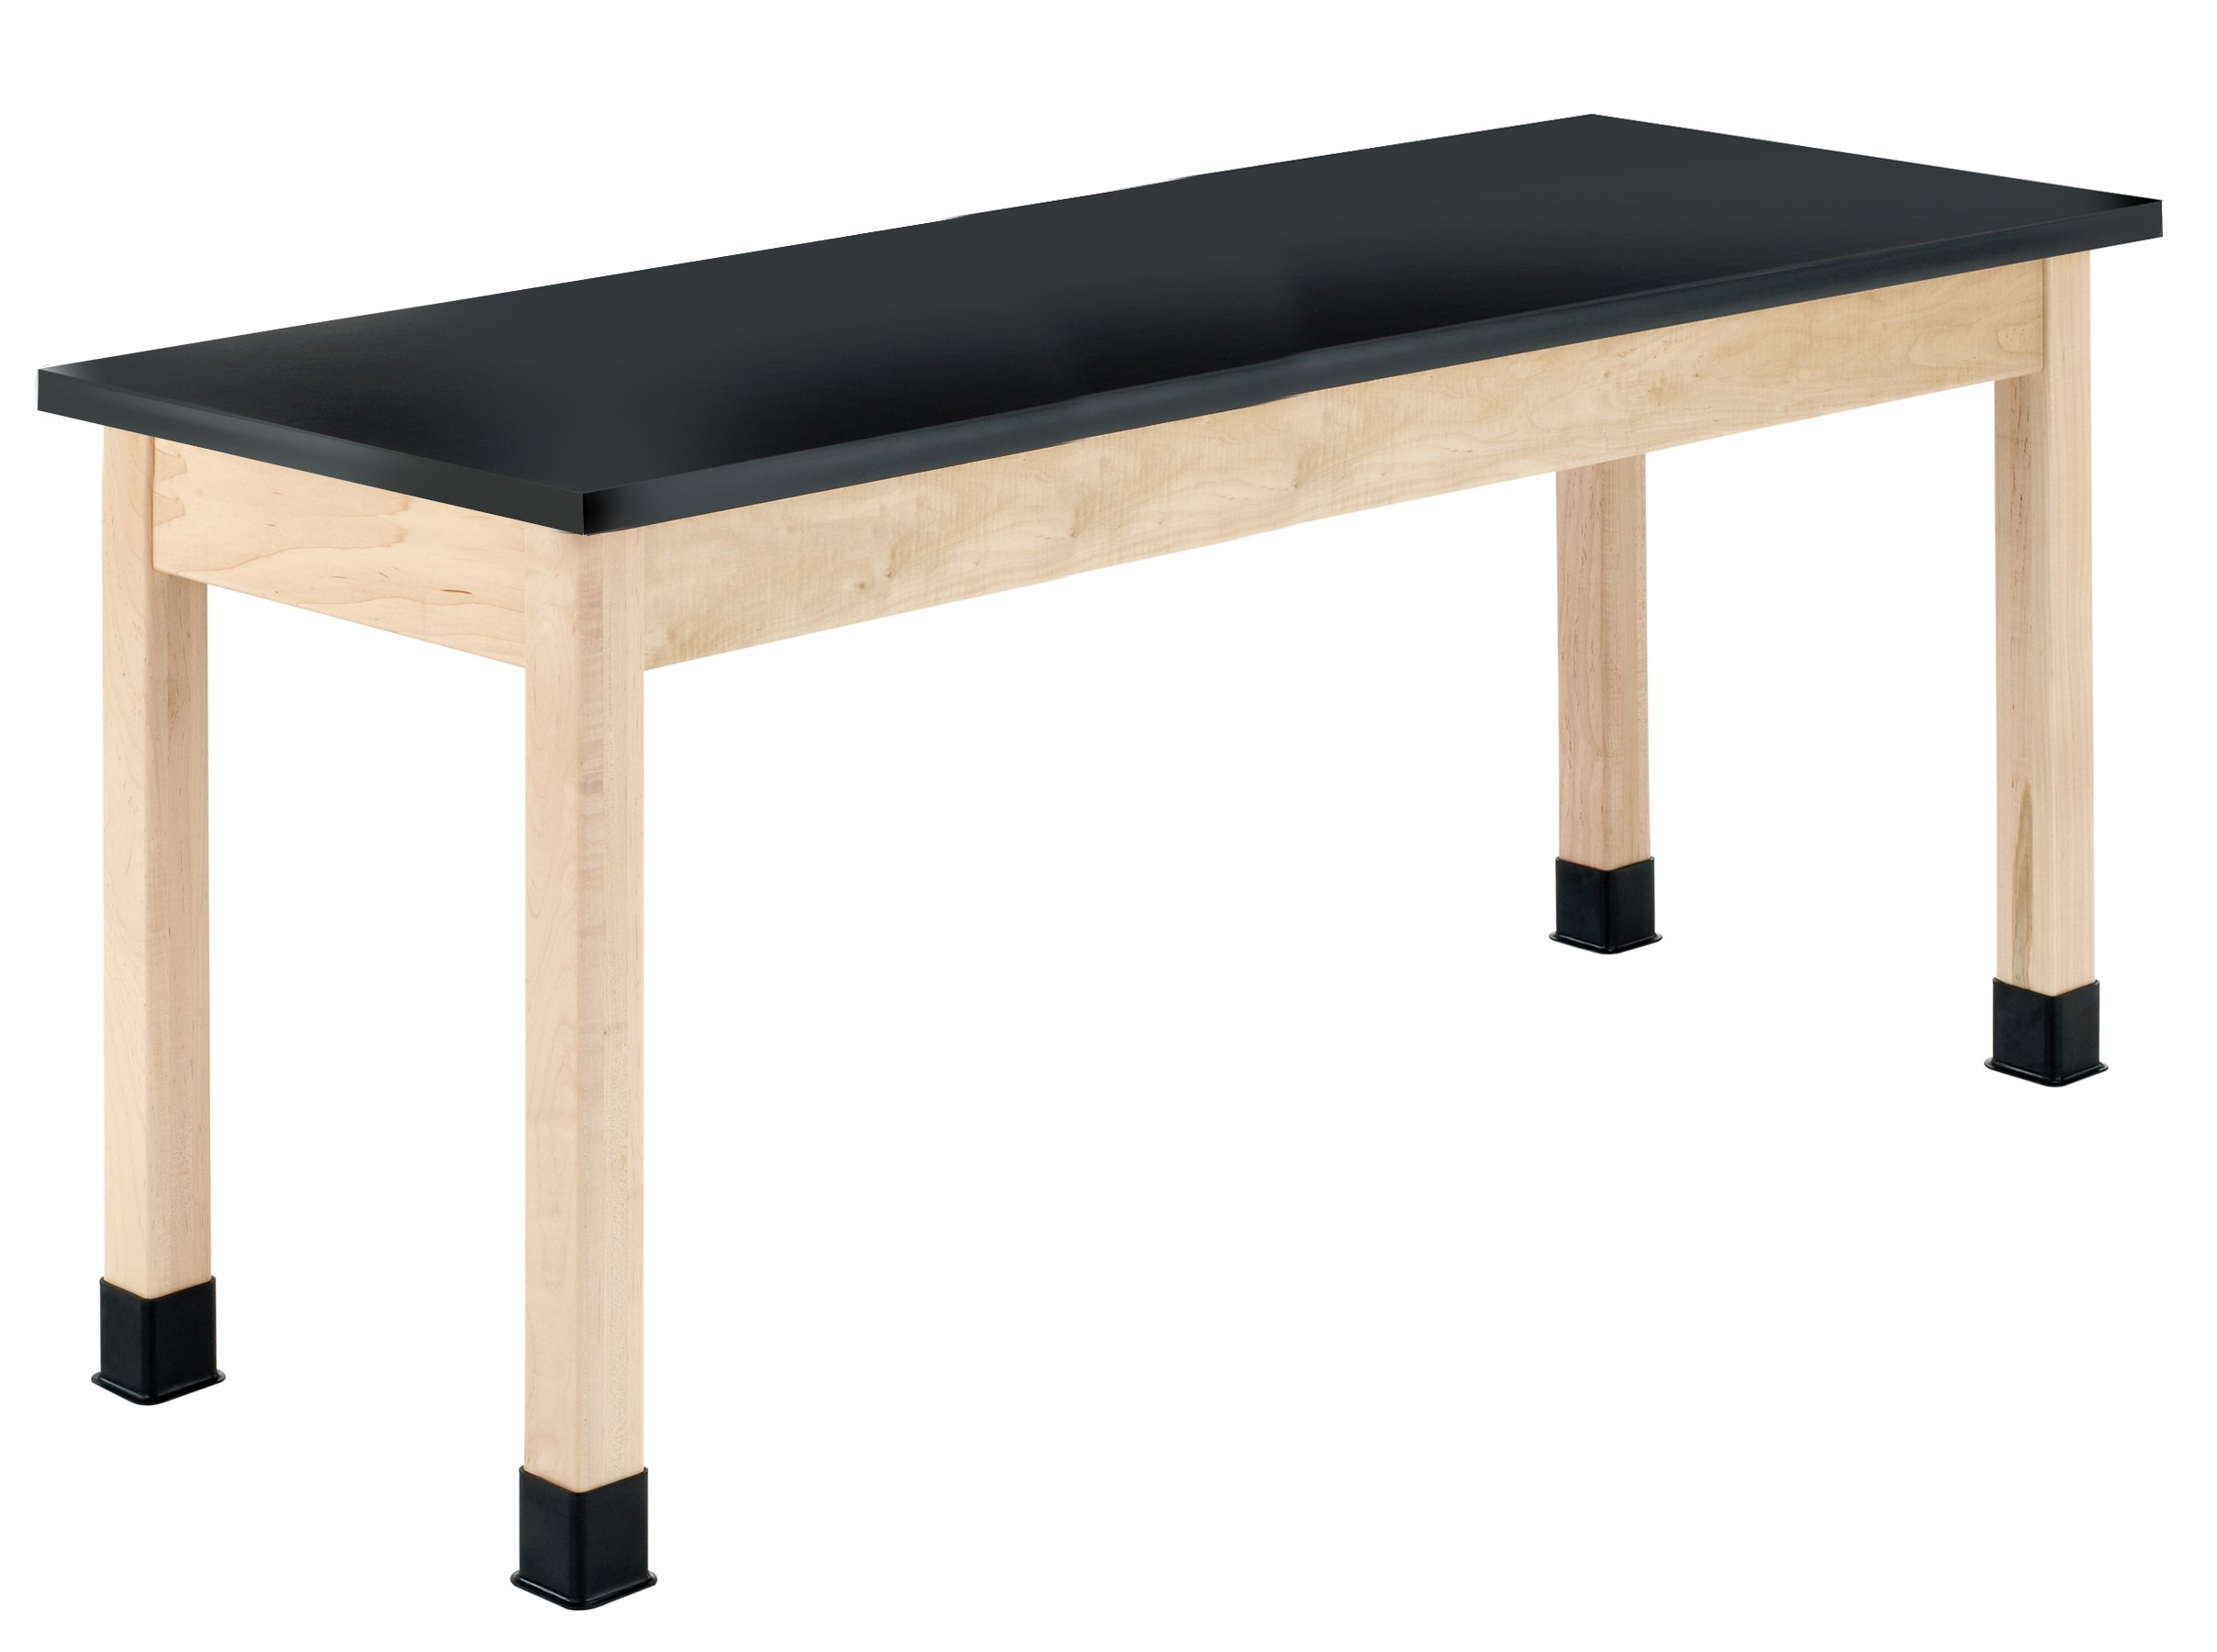 Diversified Woodcrafts P7602M30N - 24''x60'' - 30'' High, Plain Apron Laboratory Table, Maple Legs & Apron, ChemGuard Top, Made in USA